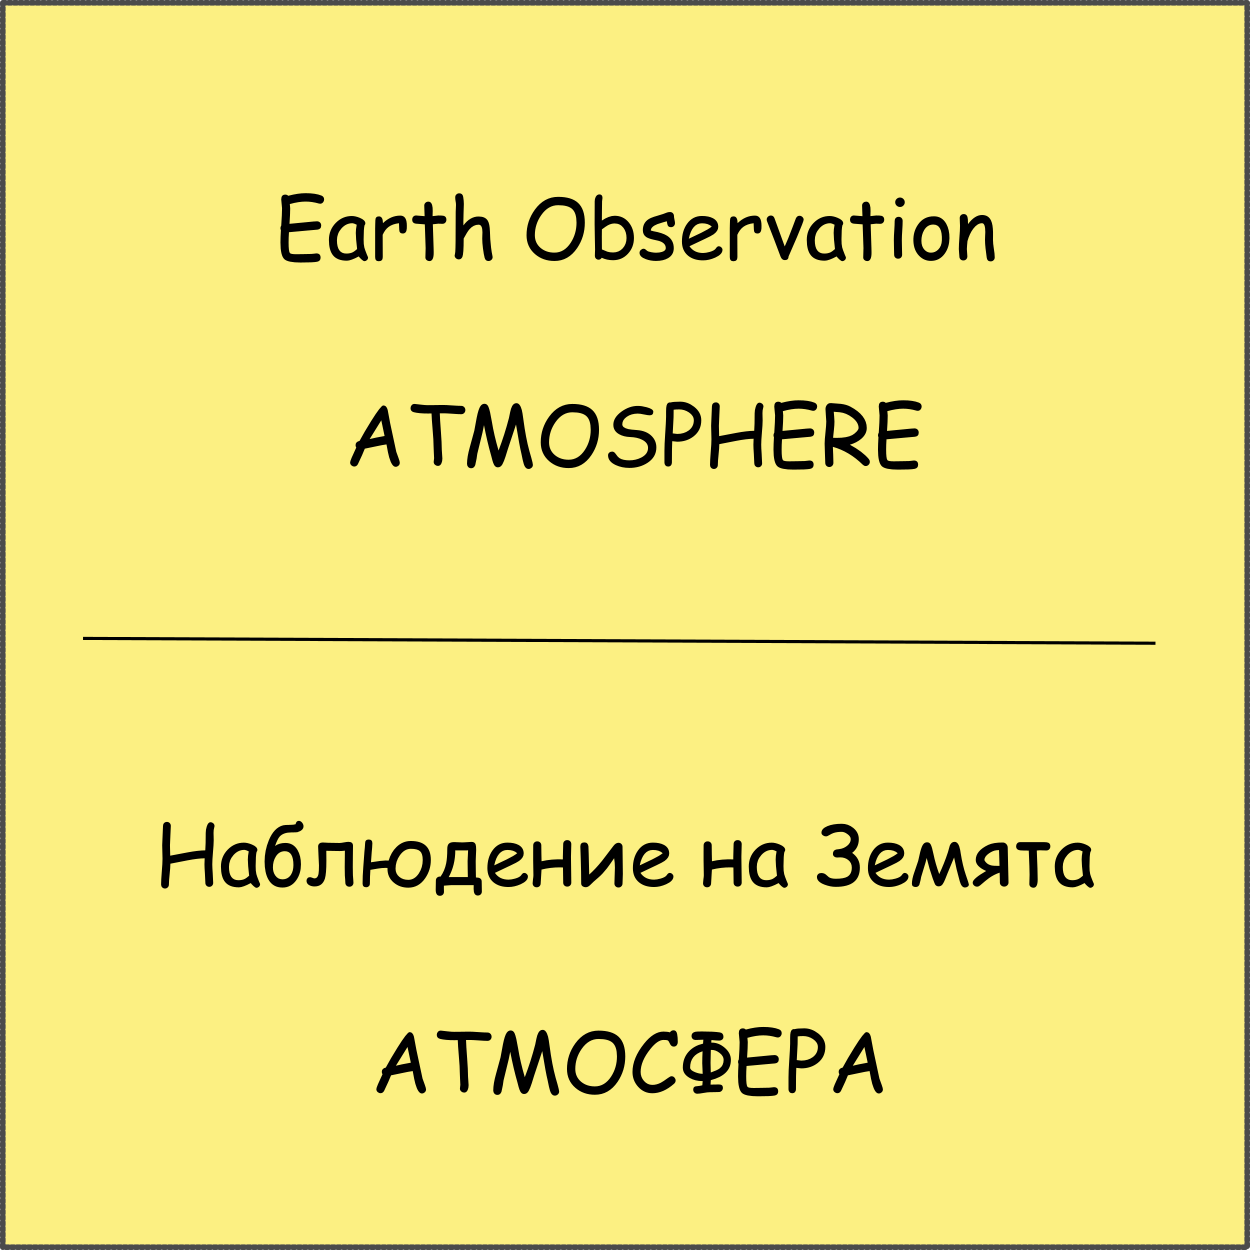 Earth Observation - ATMOSPHERE